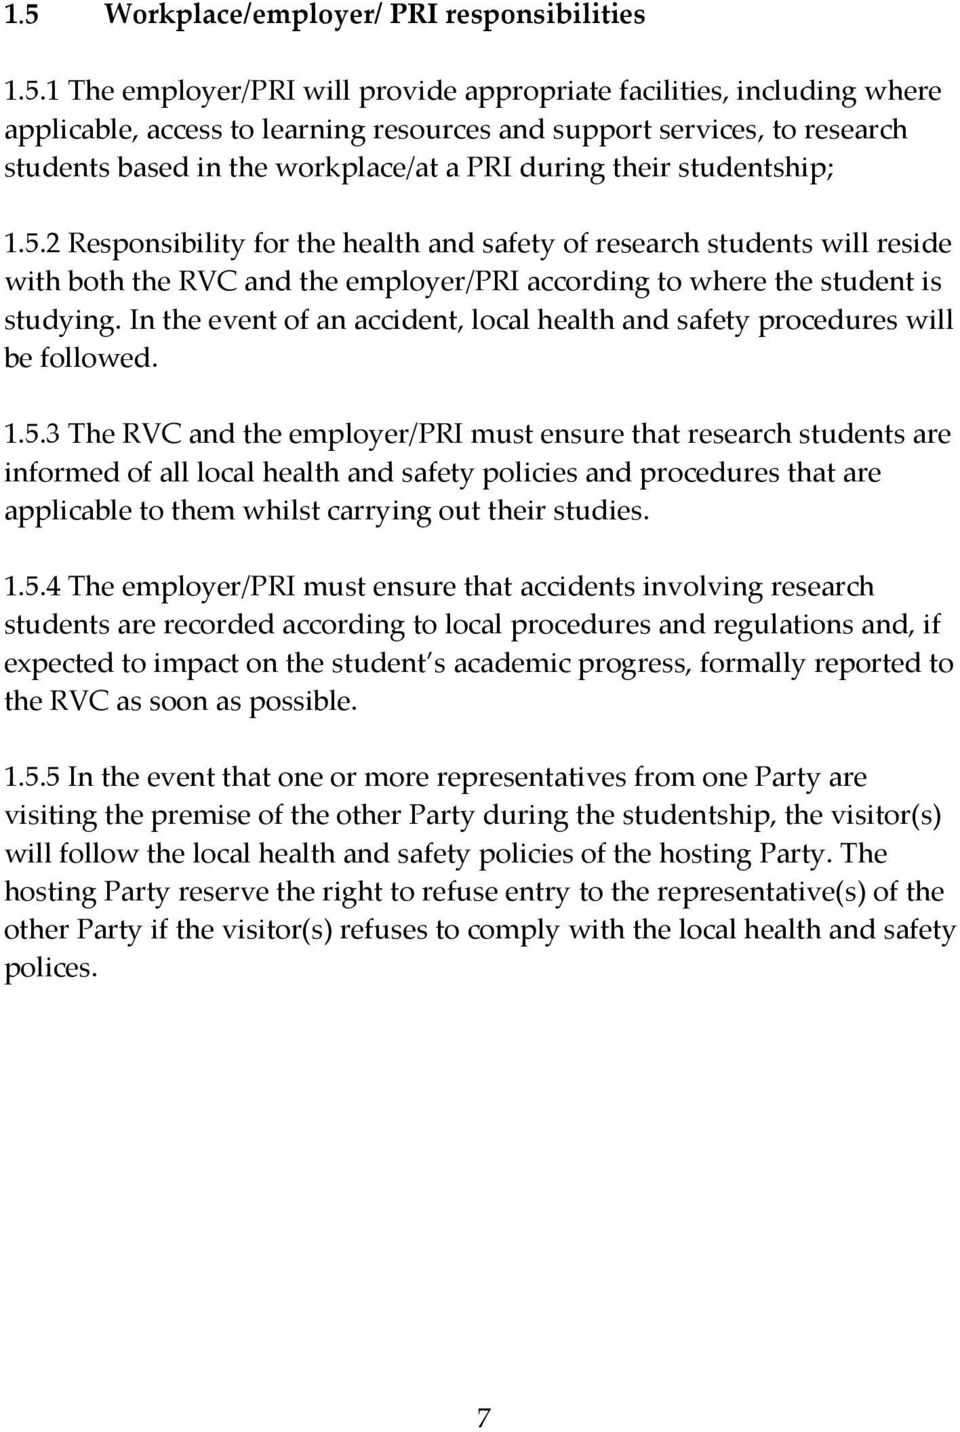 2 Responsibility for the health and safety of research students will reside with both the RVC and the employer/pri according to where the student is studying.